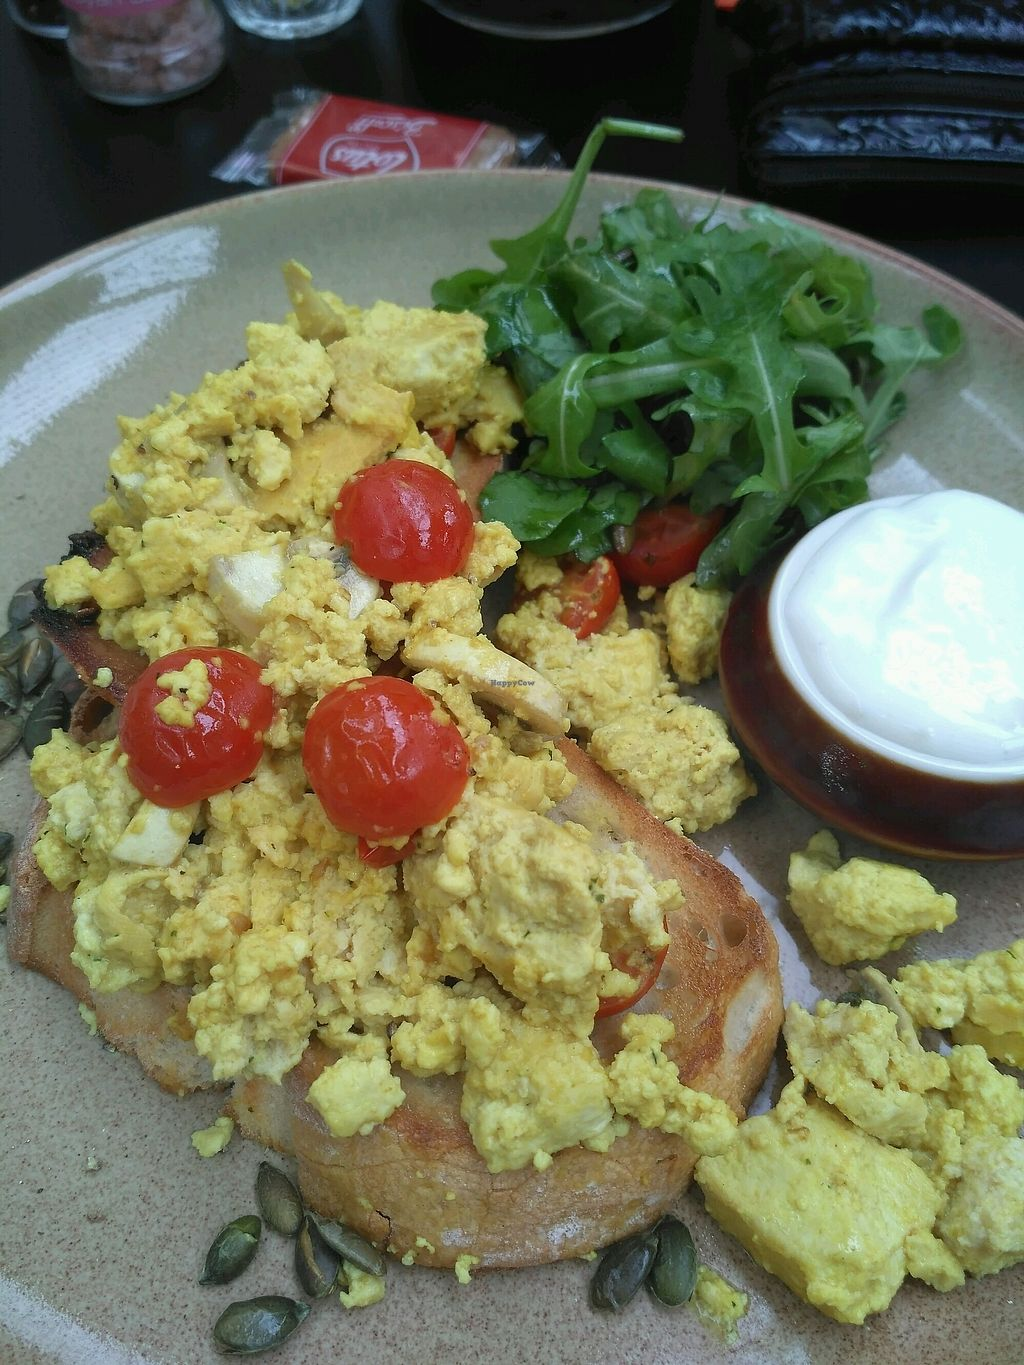 "Photo of St Mary in the Castle Cafe  by <a href=""/members/profile/Miggi"">Miggi</a> <br/>smoked tofu scramble with sourdough toast, vegan mayo <br/> November 11, 2017  - <a href='/contact/abuse/image/104766/324181'>Report</a>"